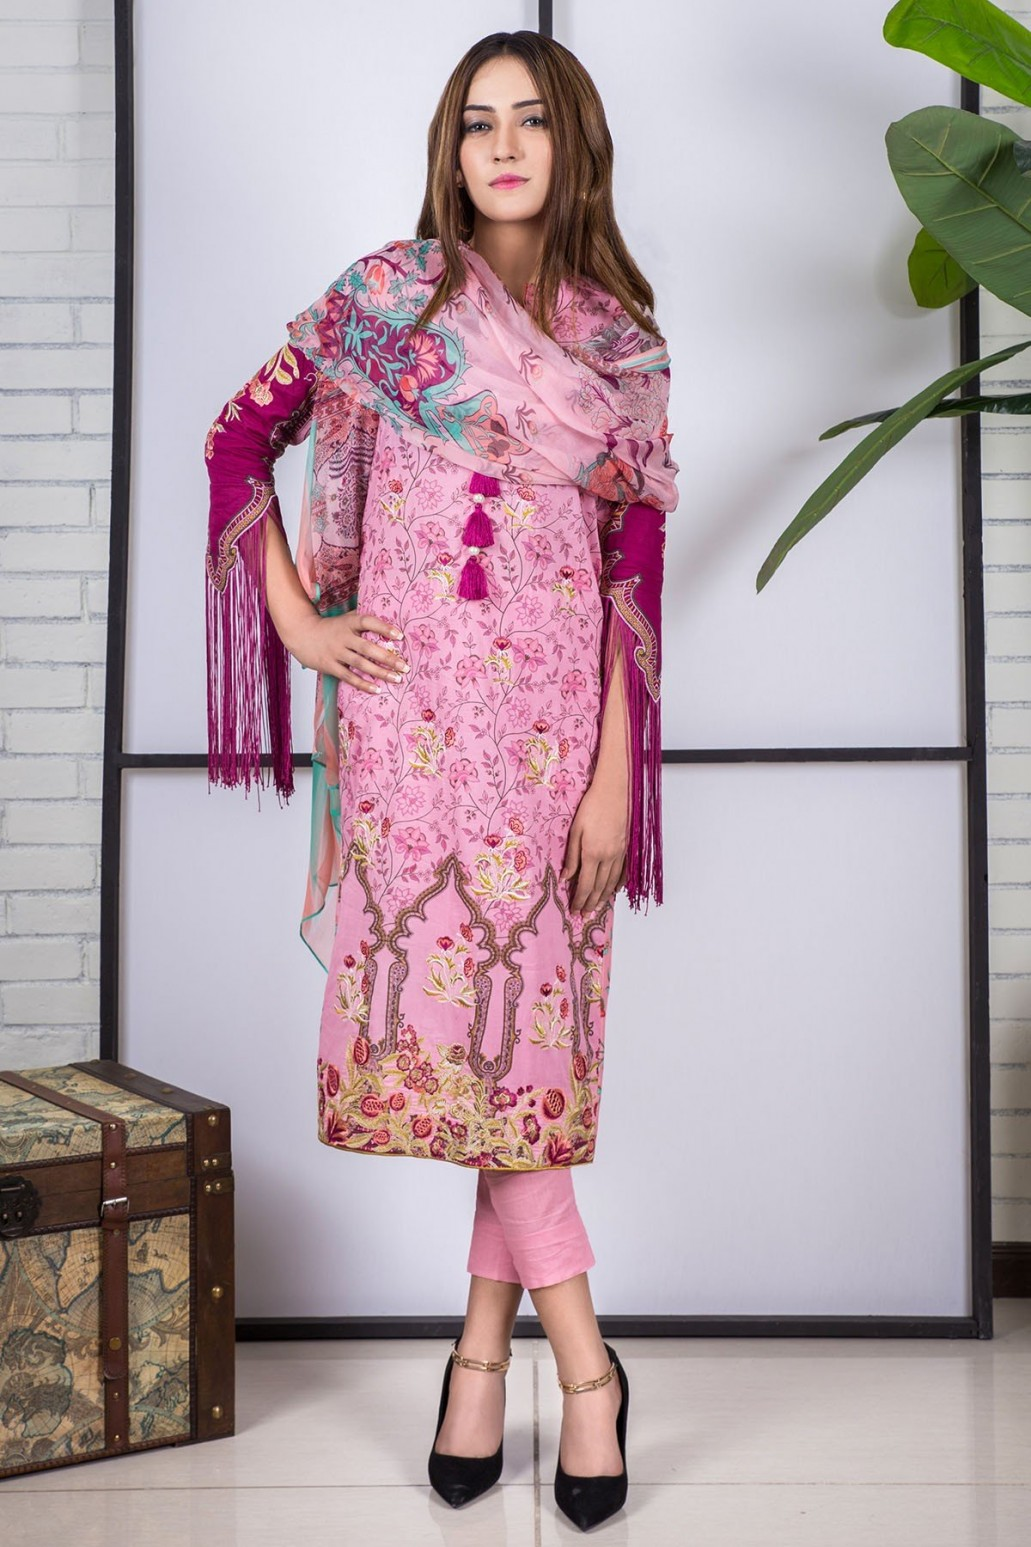 3dc873fa31f49e You can likewise take in consideration these latest men kurta designs. This  time Alkaram kurti designs for young ladies is at peak of the list.